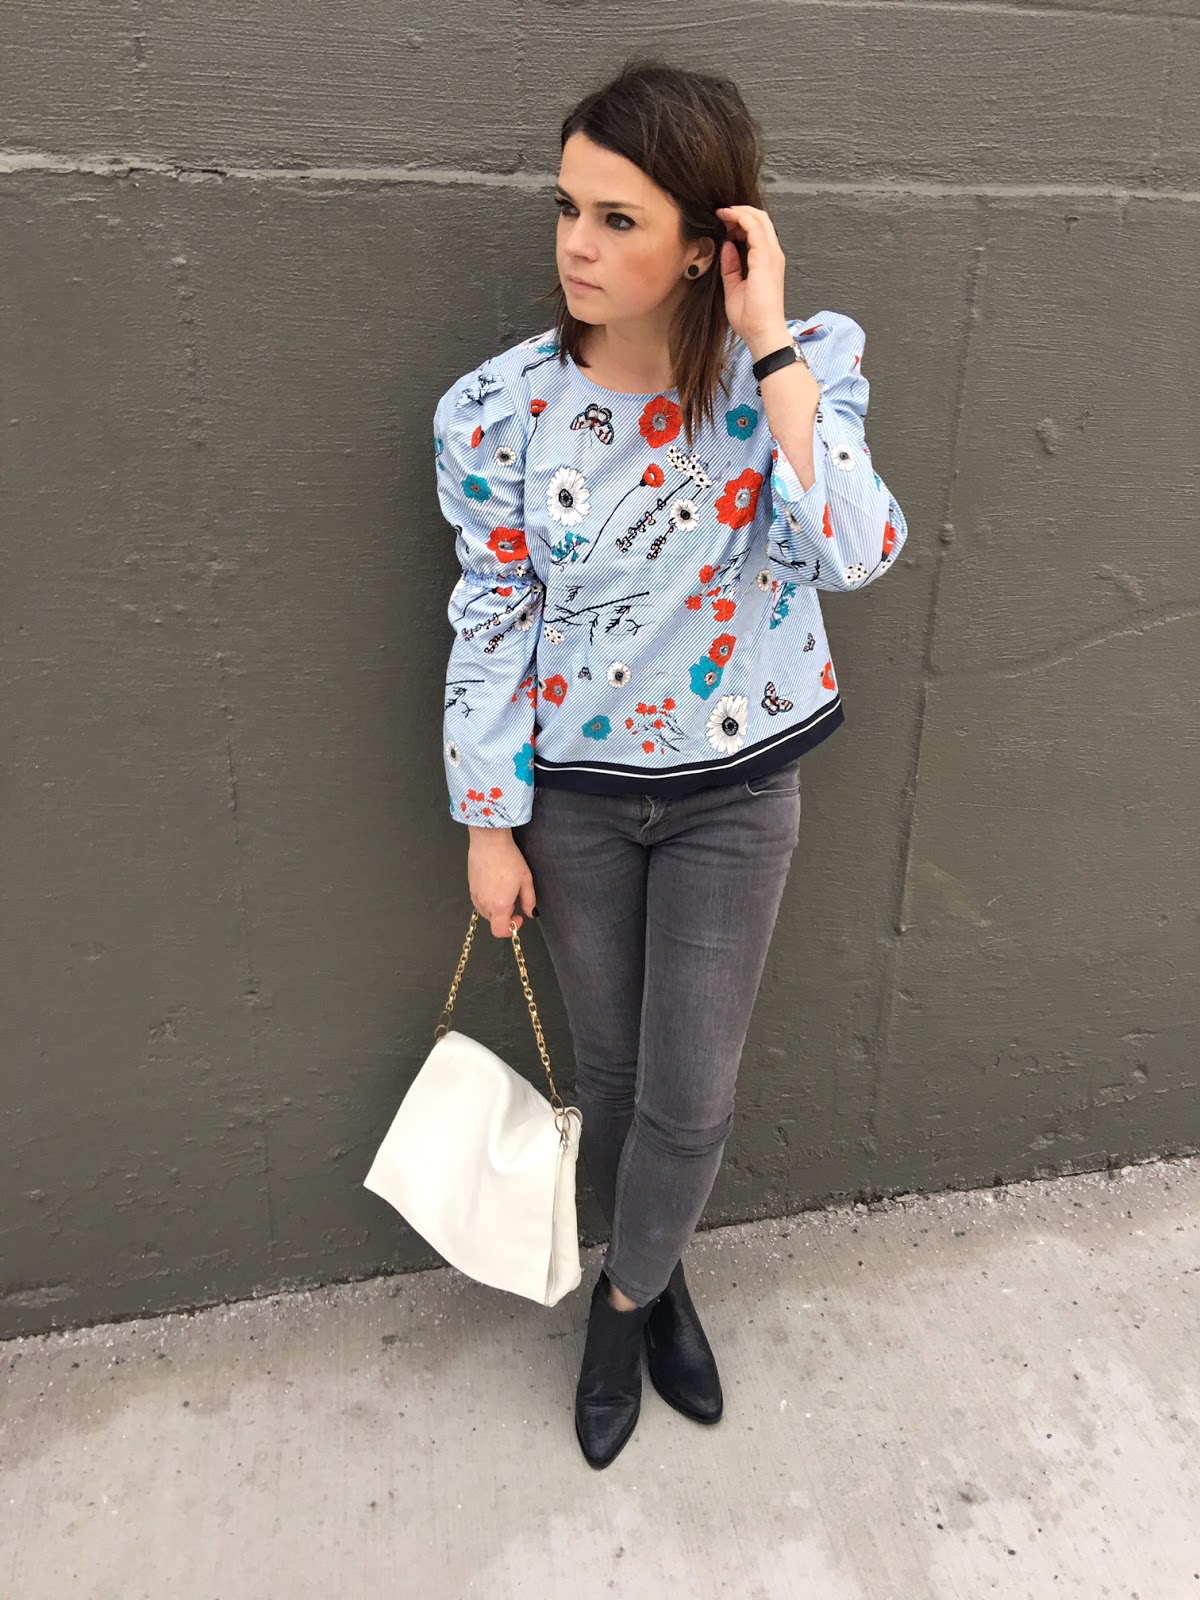 Floral blouse with puffy sleeves